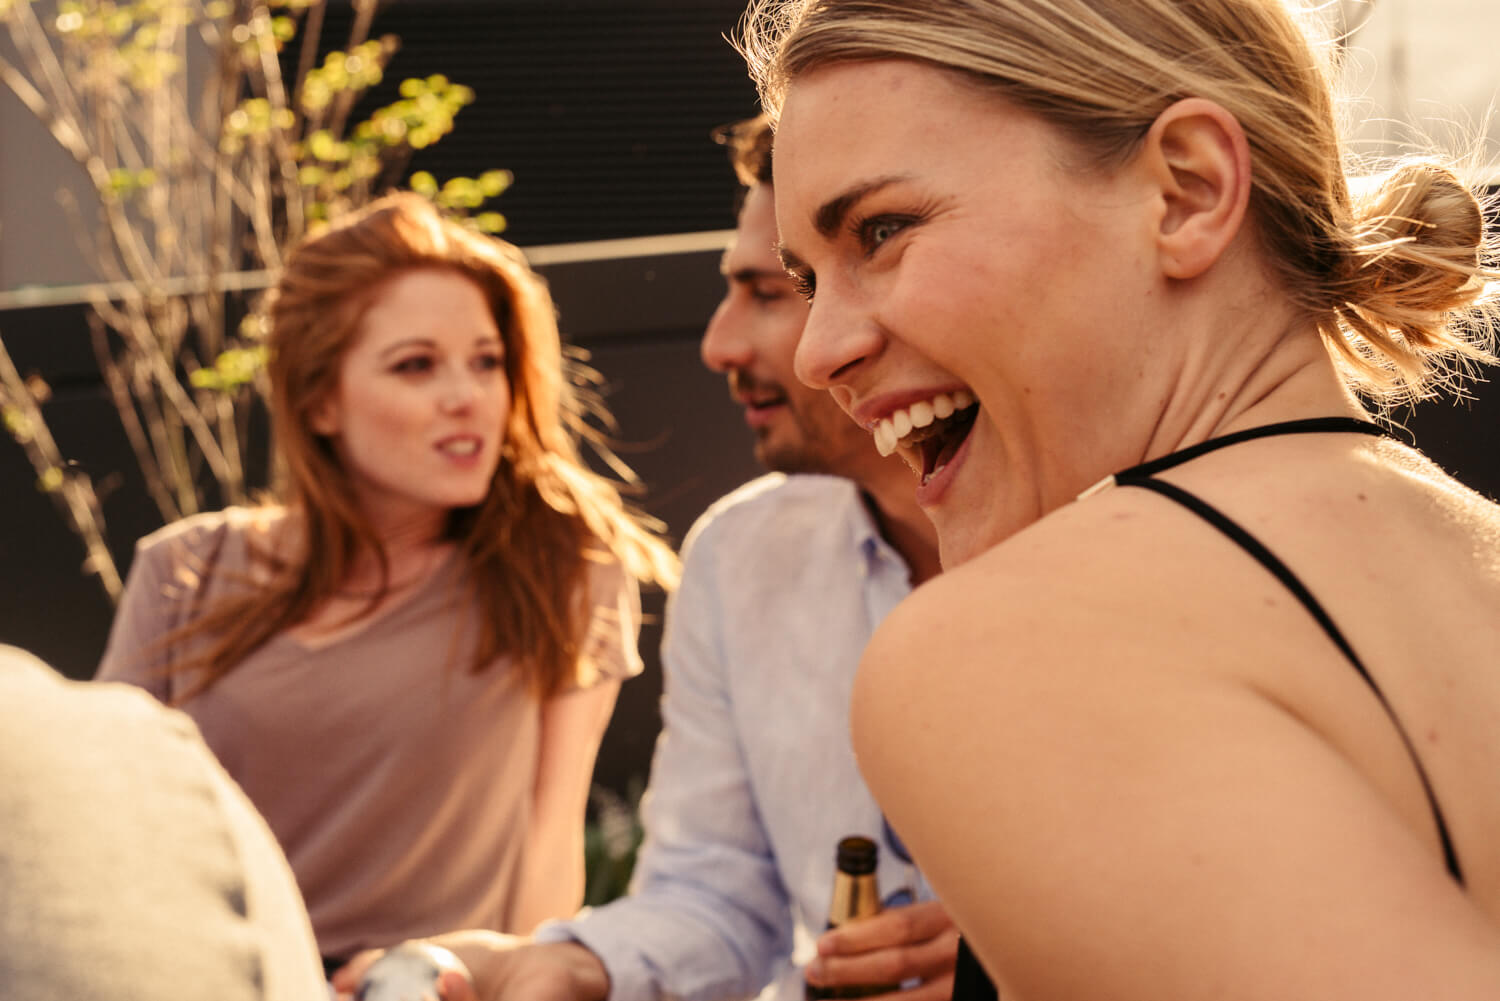 Friends drink outside, by lifestyle photographer Tim Cole